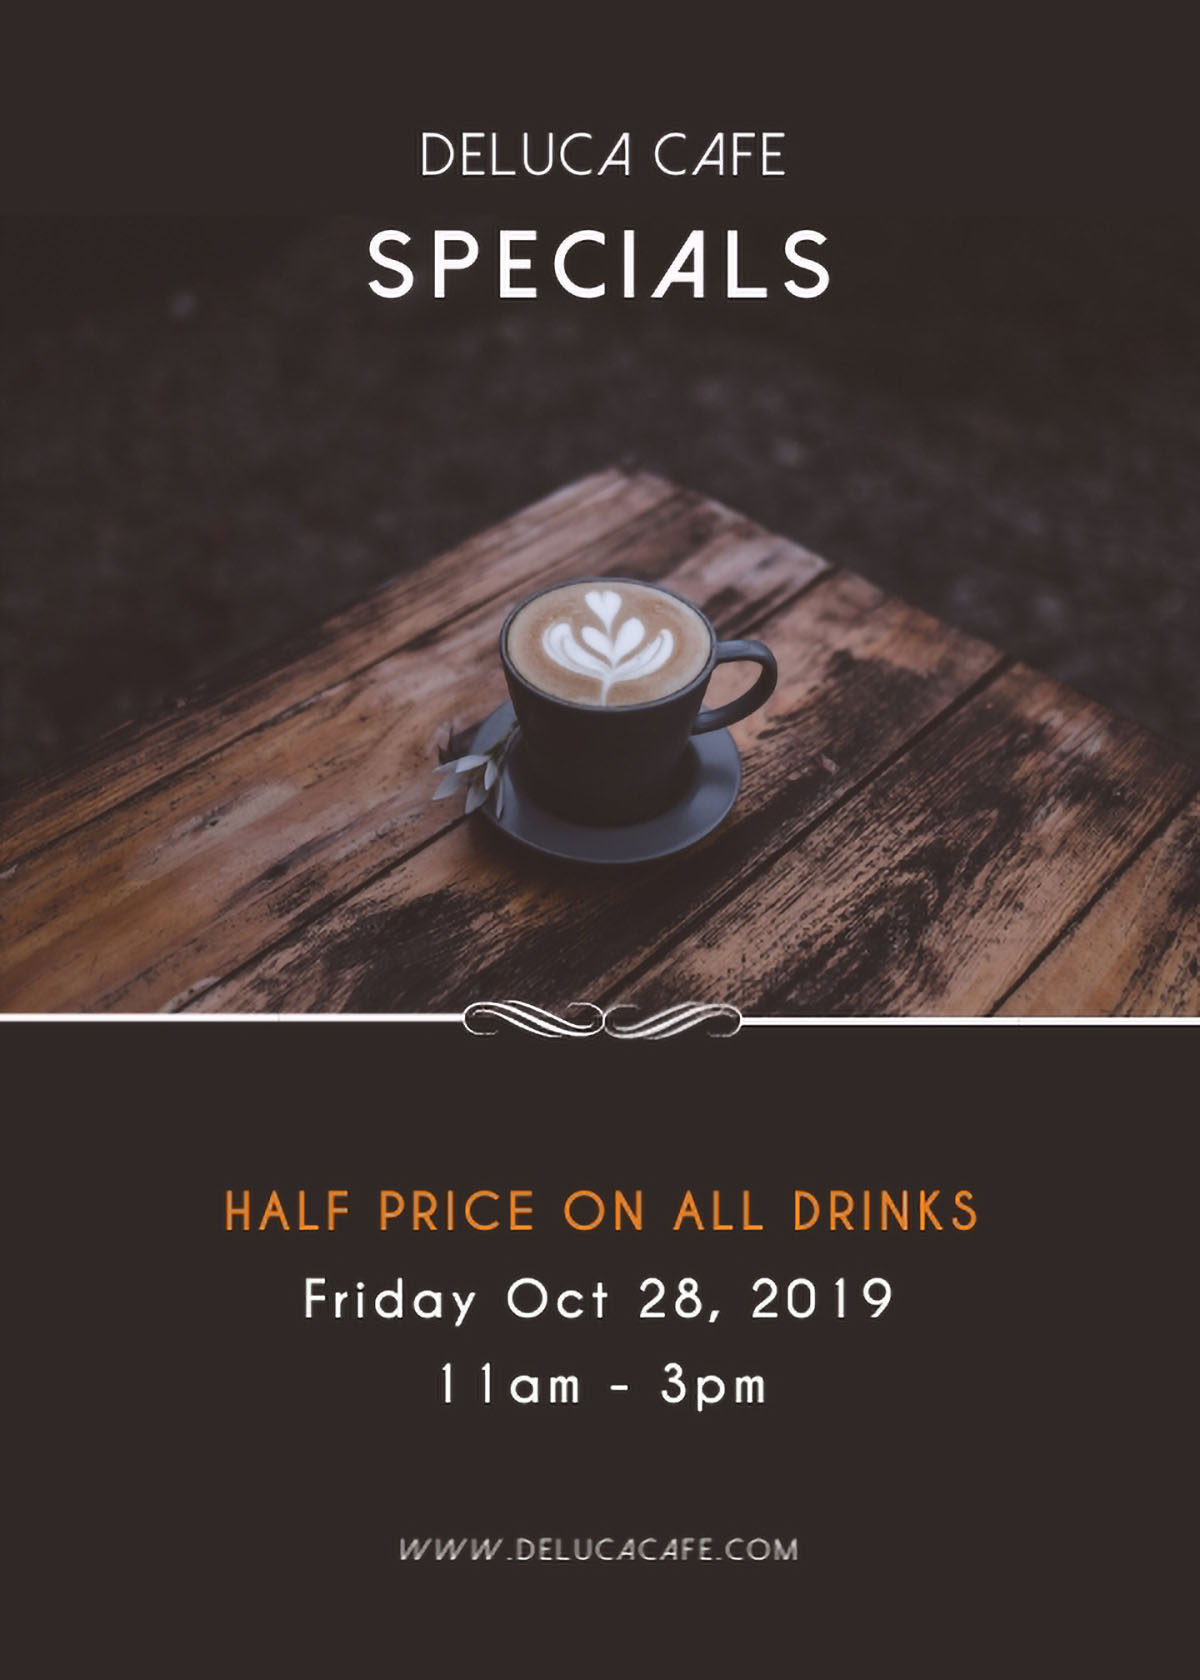 flyer design - cafe specials flyer template